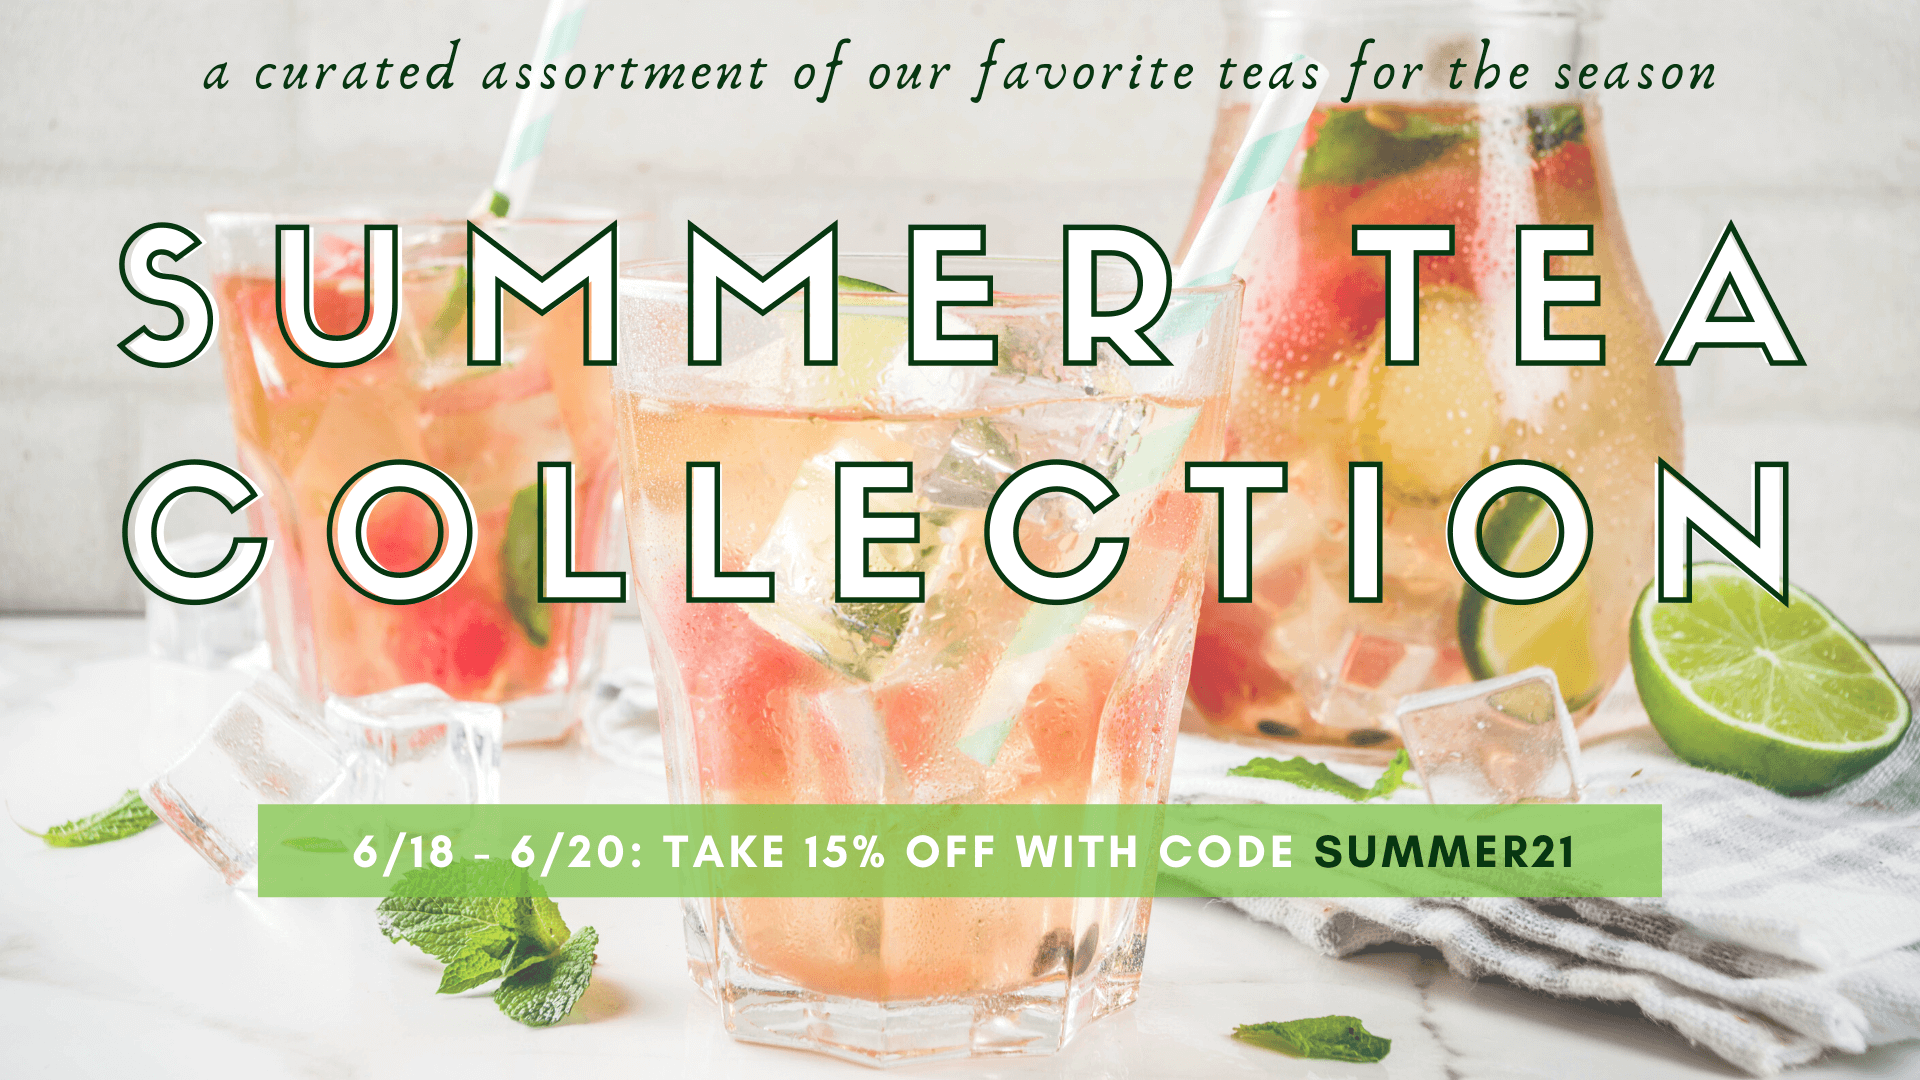 a photo of iced tea glasses advertising our summer tea collection on sale. June 18-June 20, take 15% off all summer collection teas with code SUMMER21